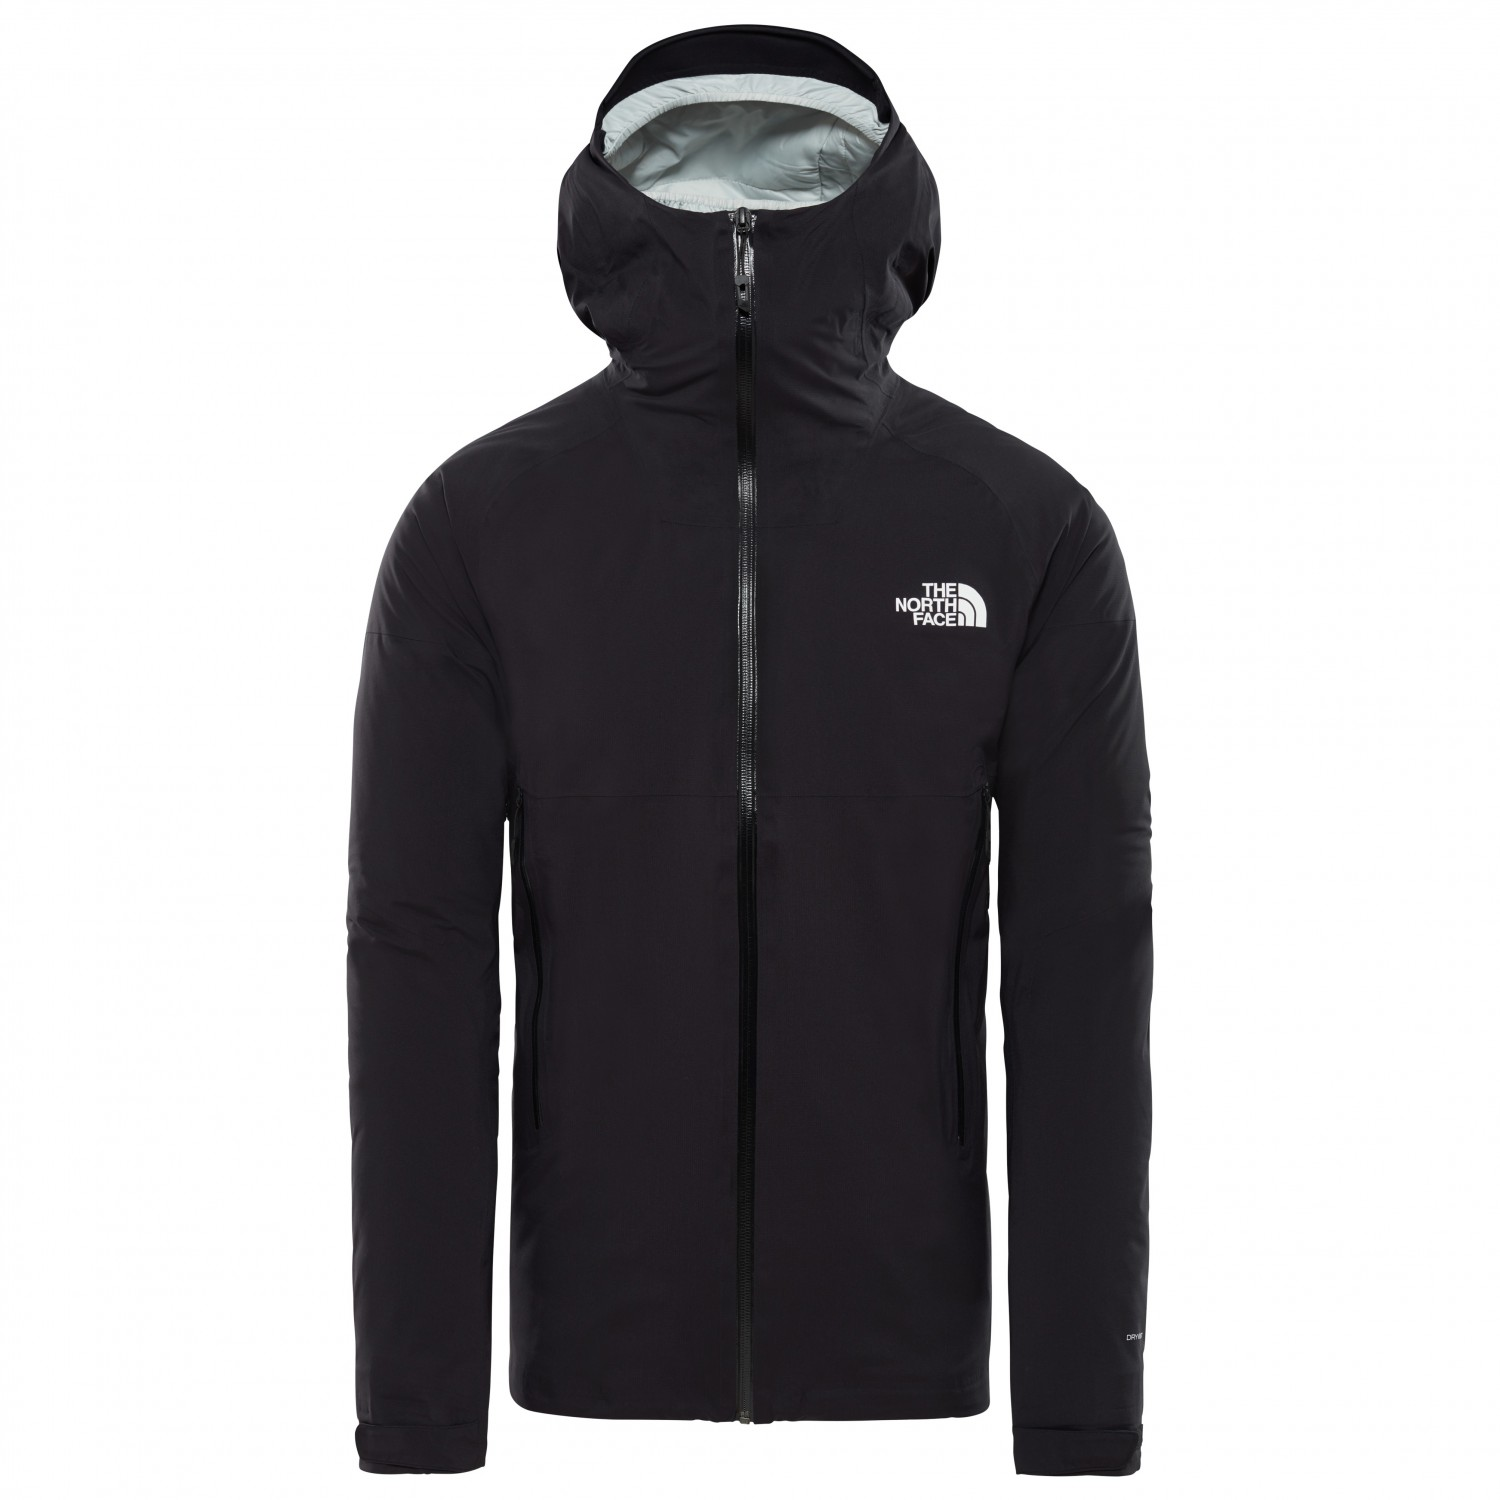 9f178decab9c7 The North Face Impendor Insulated Jacket - Winter Jacket Men's ...